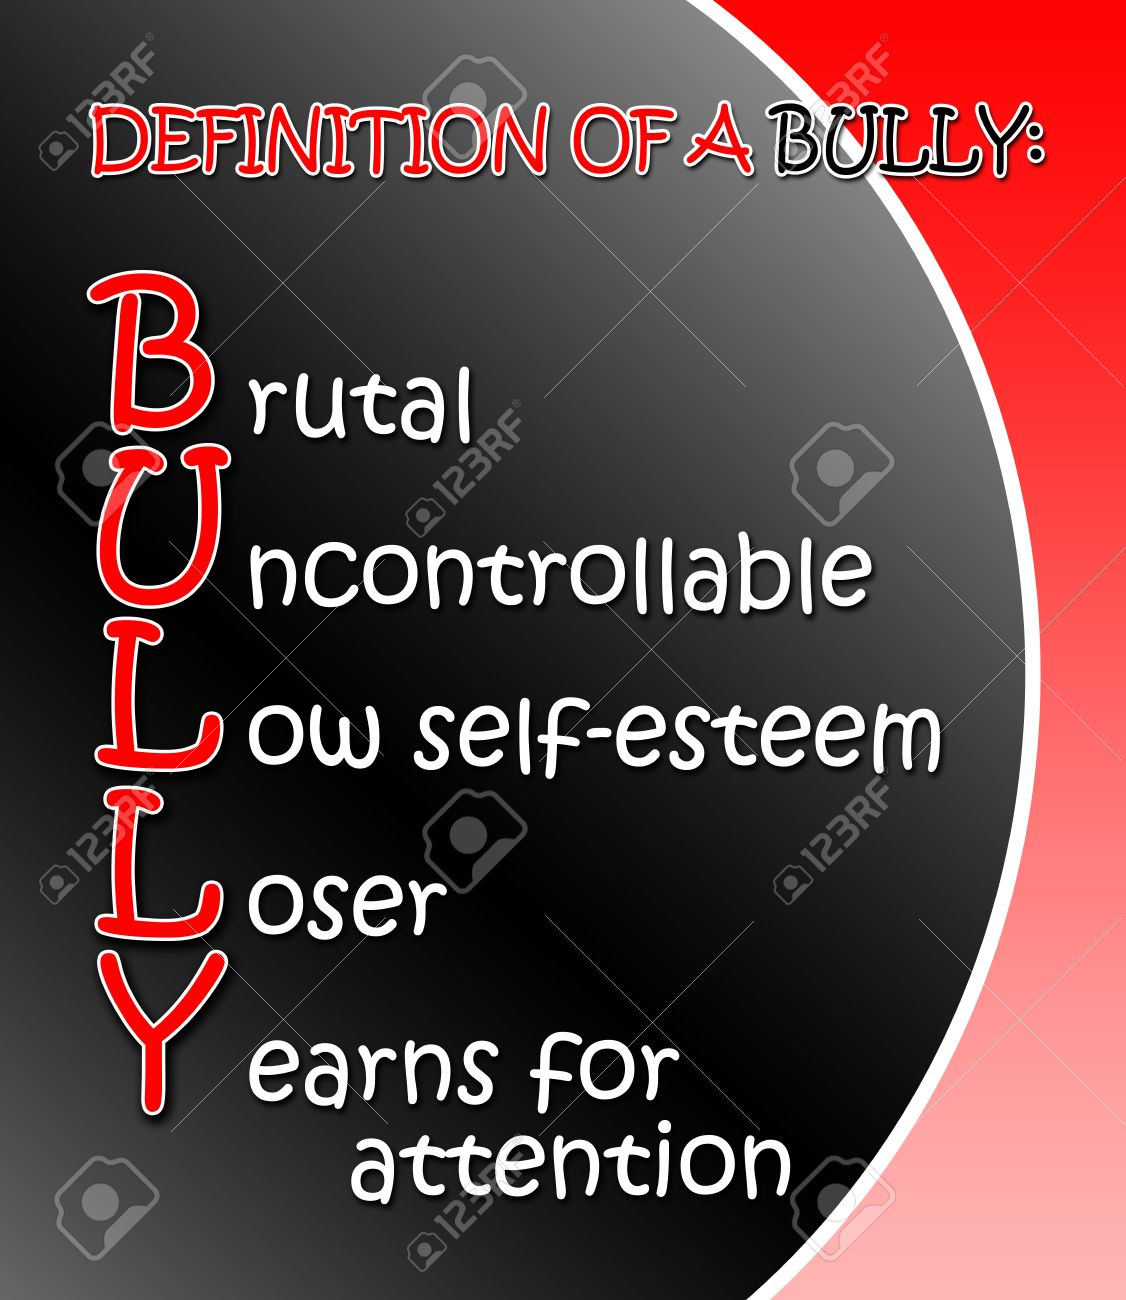 black and red definition of a bully poster stock photo, picture and